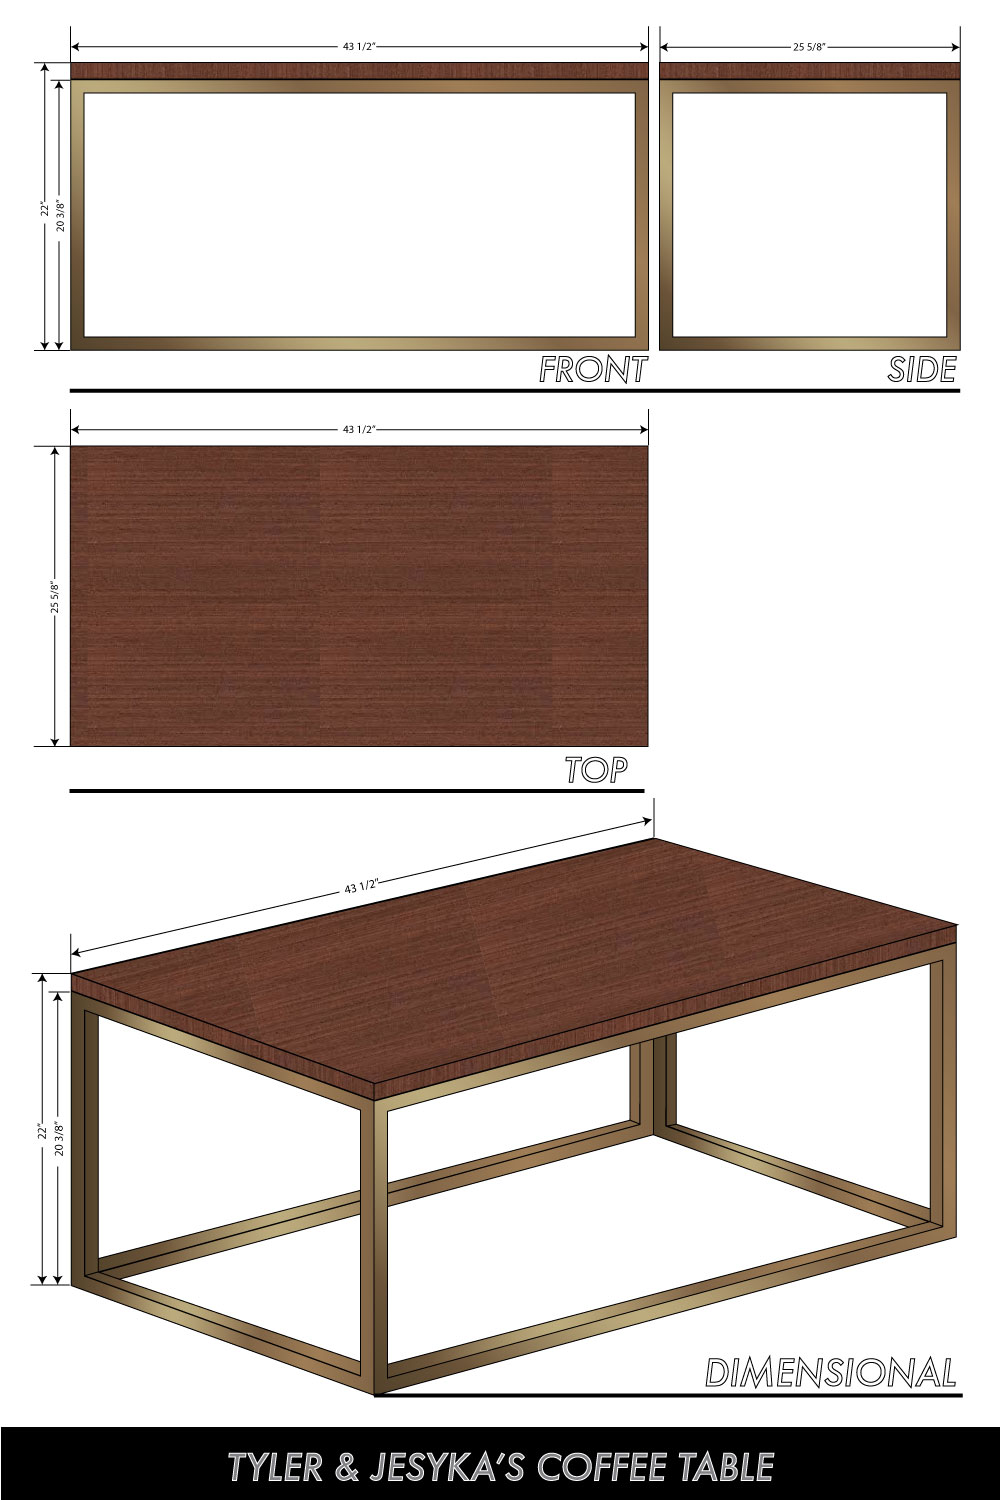 Building our own coffee table visual vocabularie - What is the average height of a coffee table ...